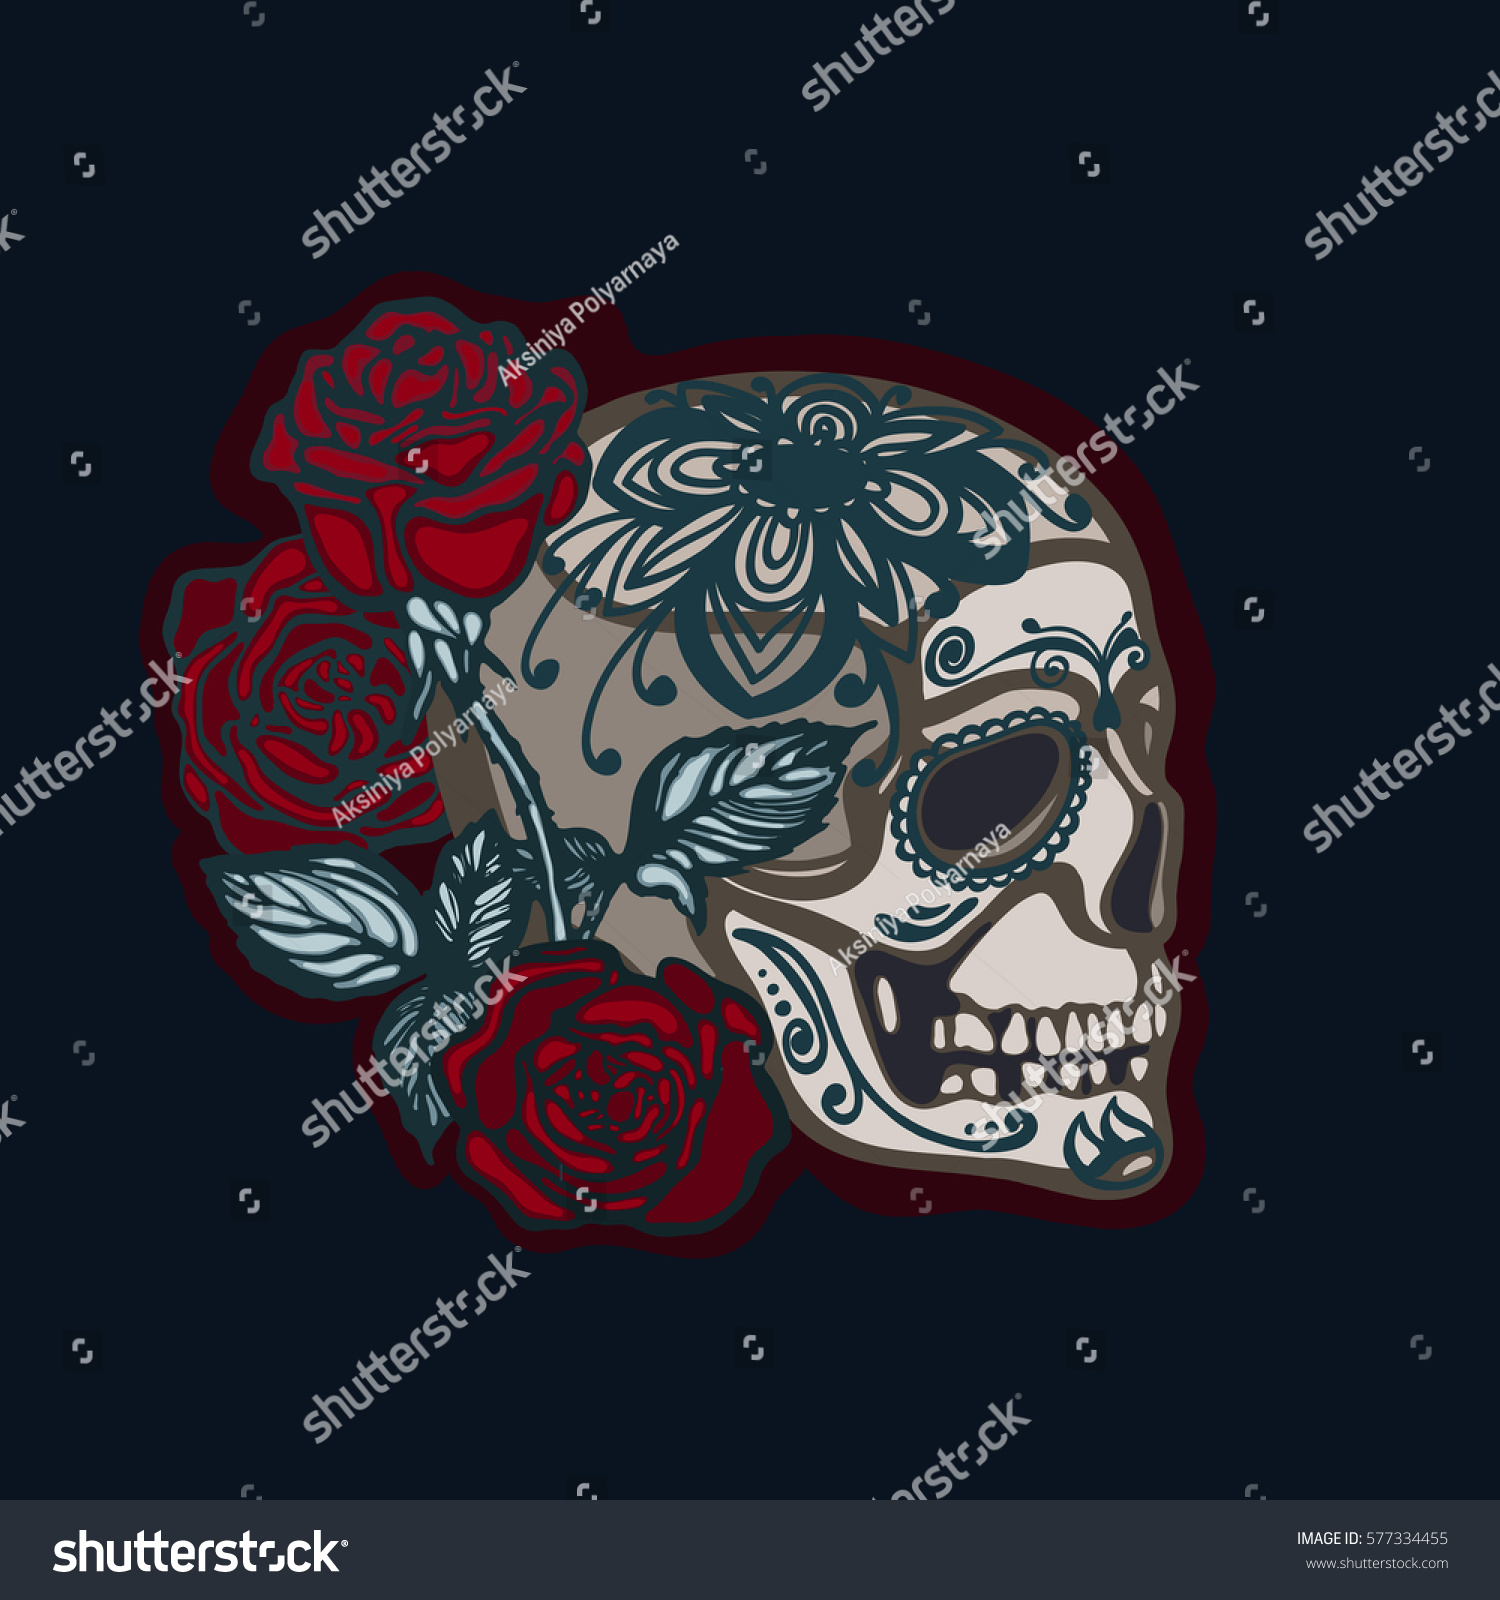 Skull Roses Symbol Mexican Holiday Day Stock Illustration 577334455